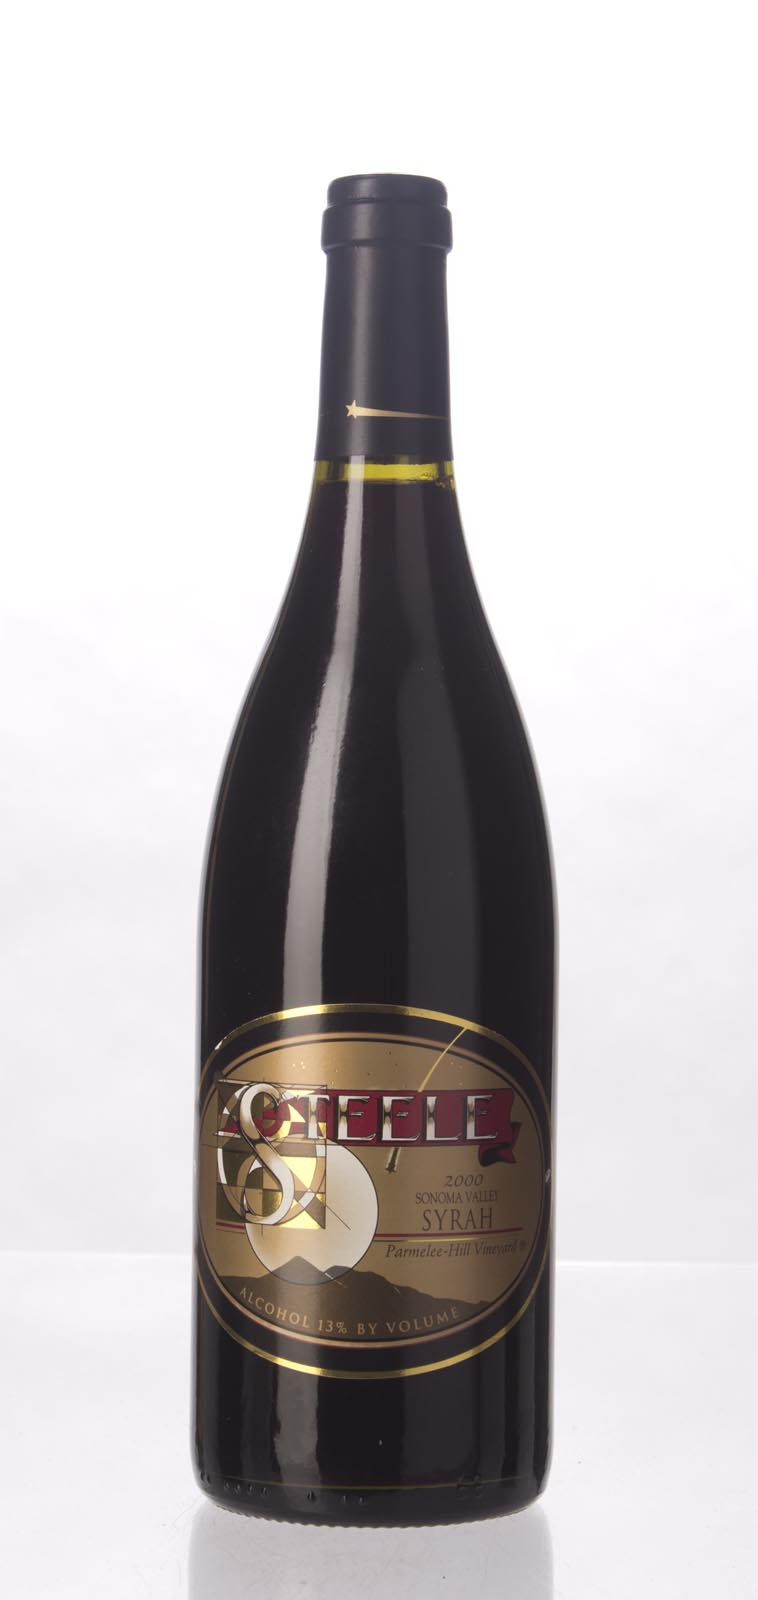 Steele Syrah Parmelee Hill Vineyard 2000, 750mL () from The BPW - Merchants of rare and fine wines.